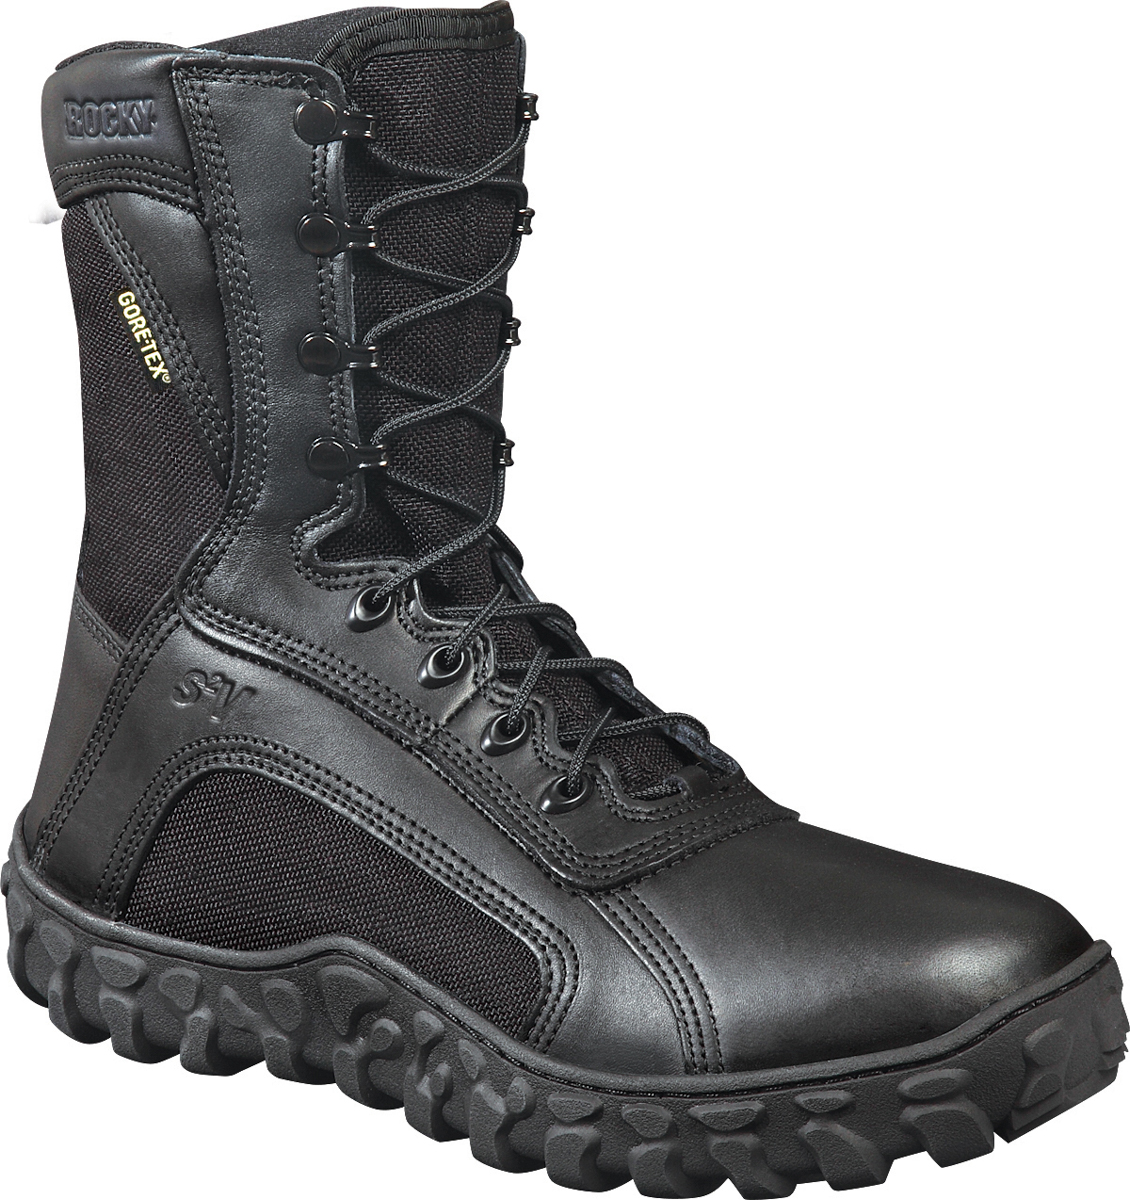 rocky s2v mens black leather goretex waterproof tactical